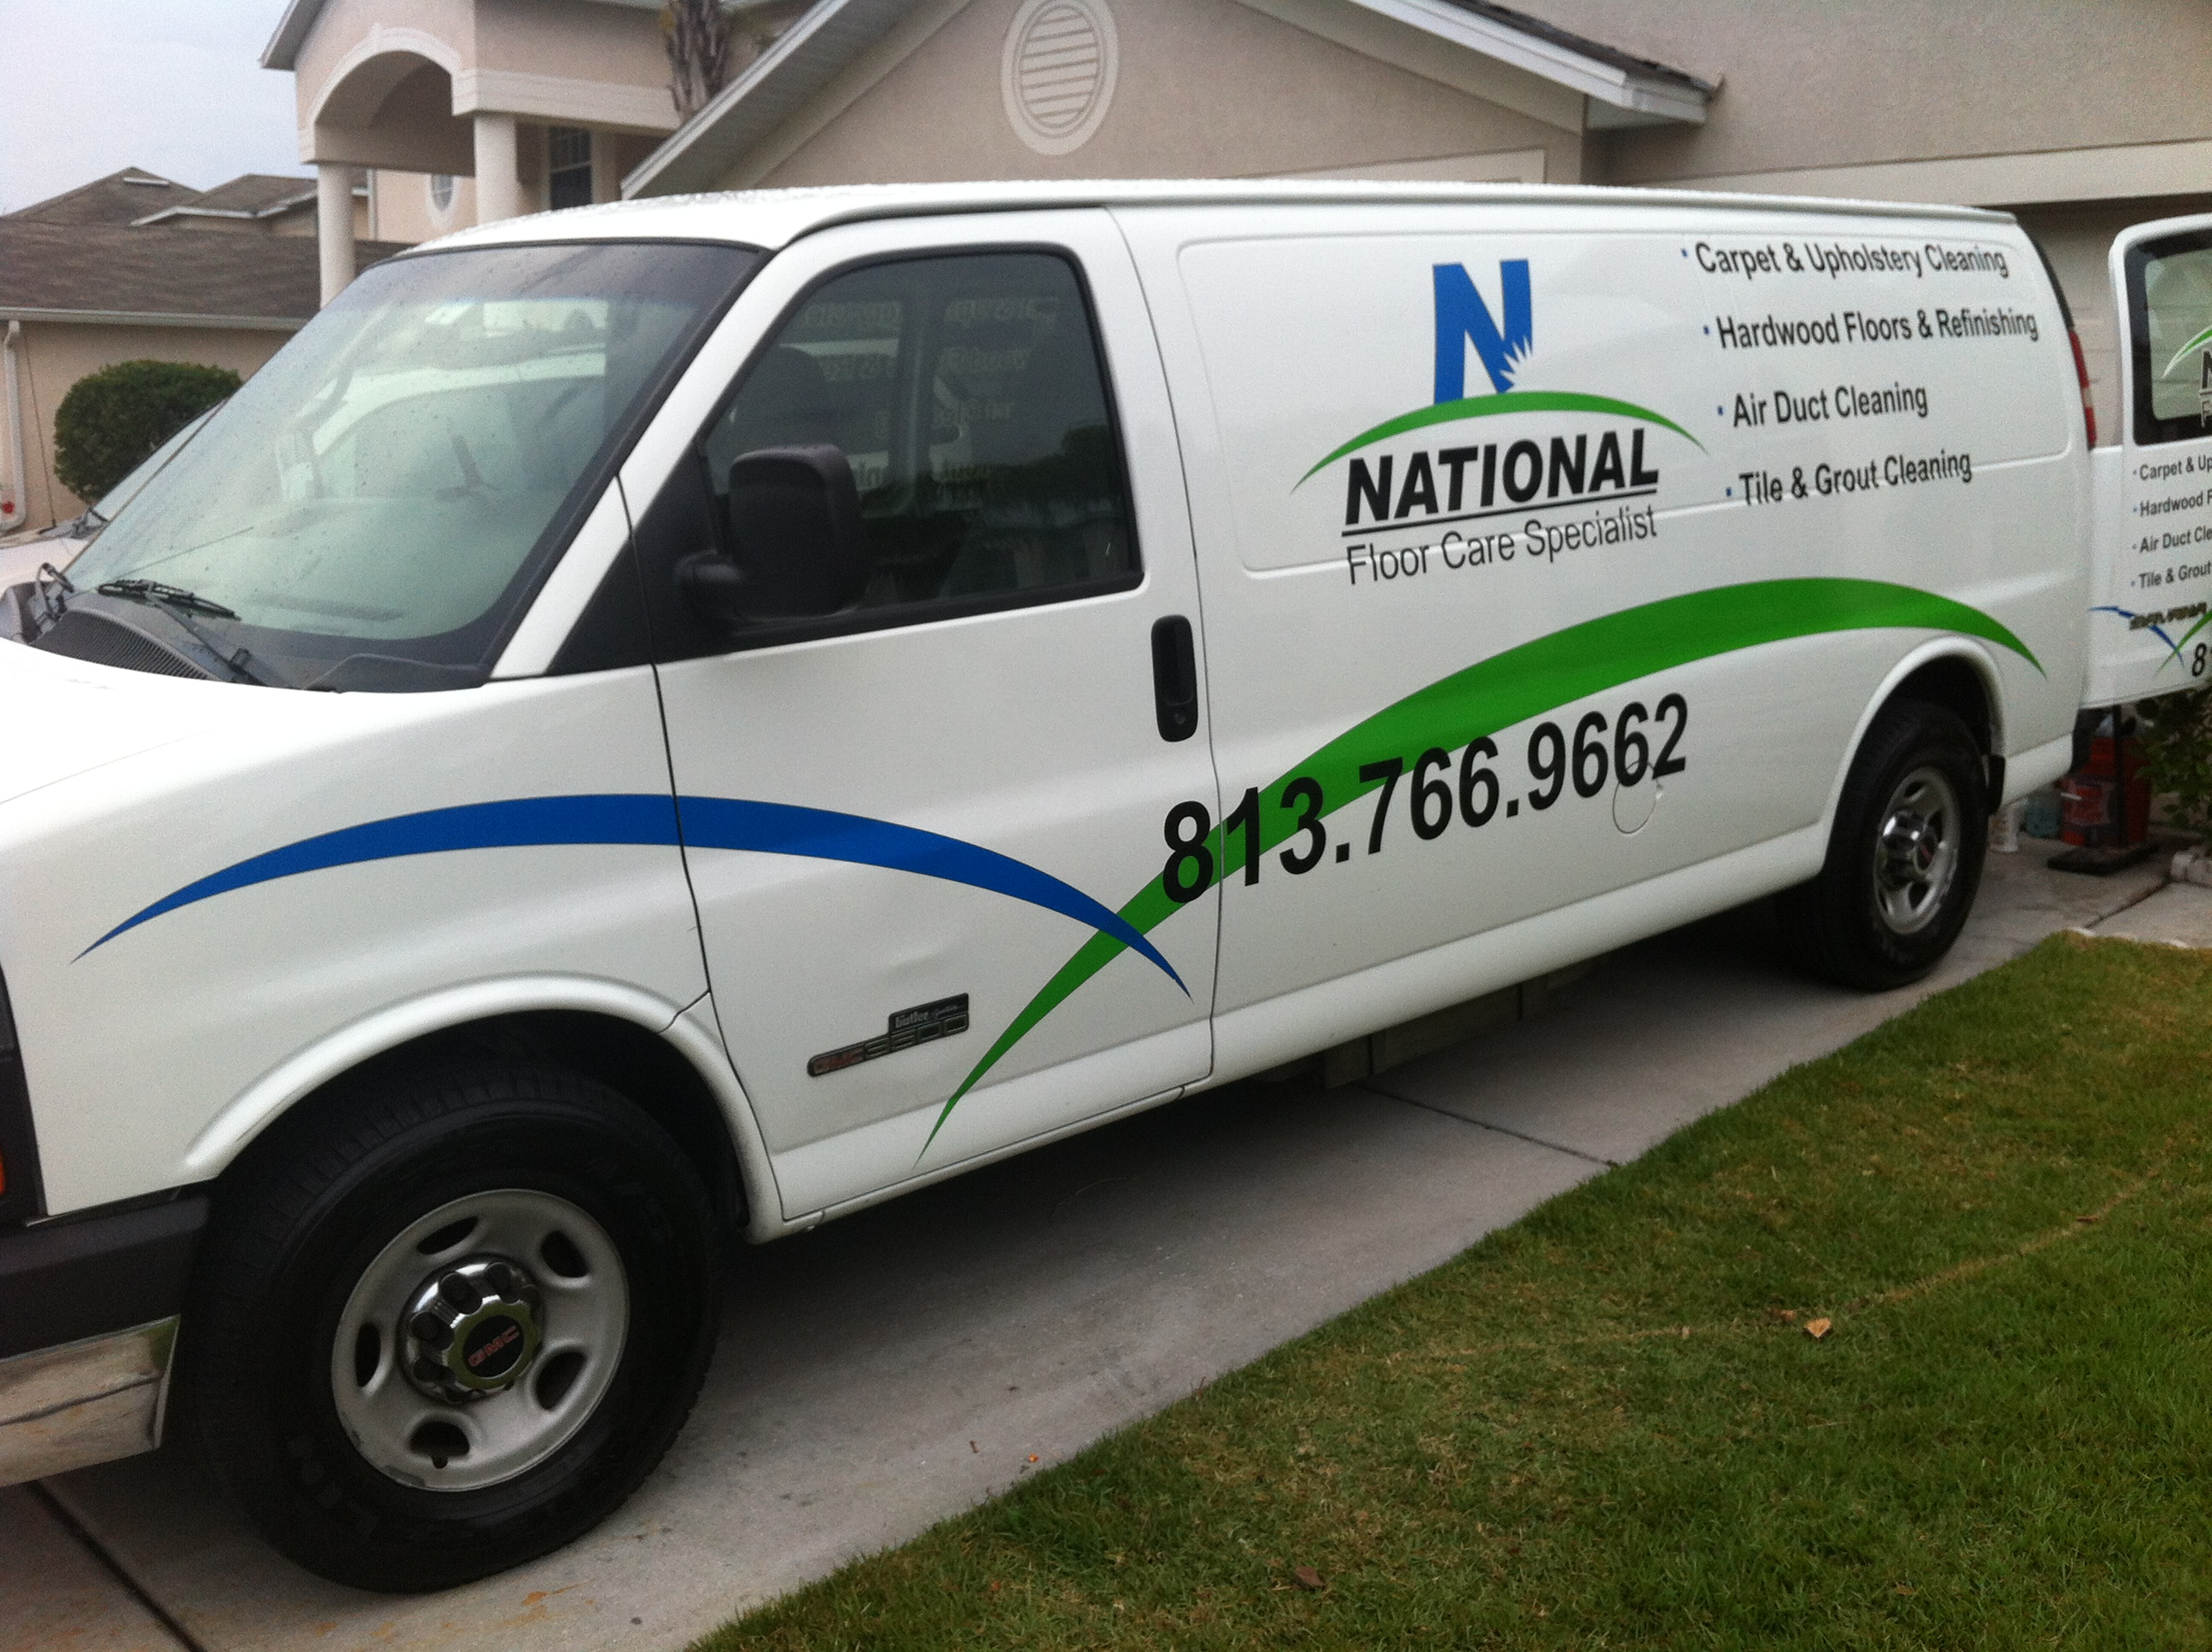 Used Butler Carpet Cleaning Van For Sale